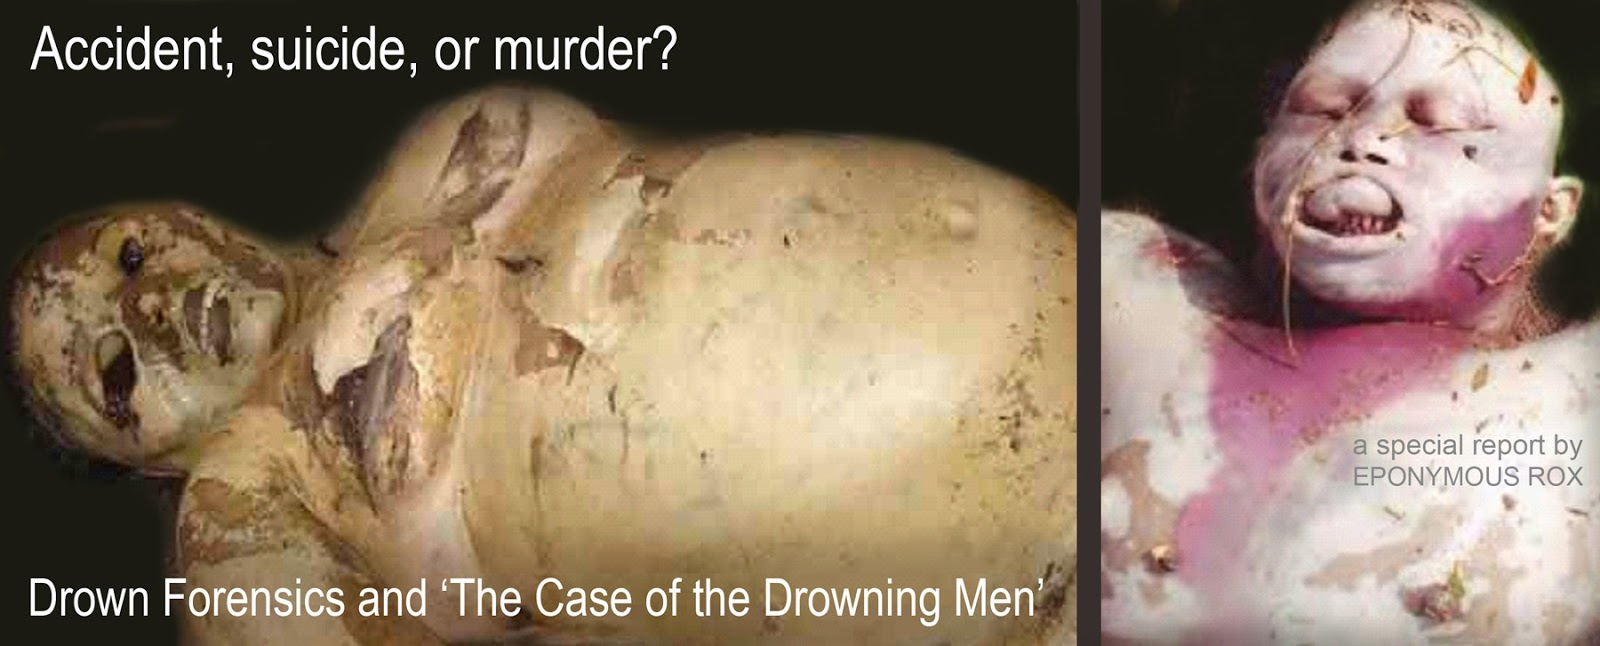 2016's Full-Color Expanded & Revised Edition of THE CASE OF THE DROWNING MEN: Investigating the Smiley Face Murders, by Eponymous Rox